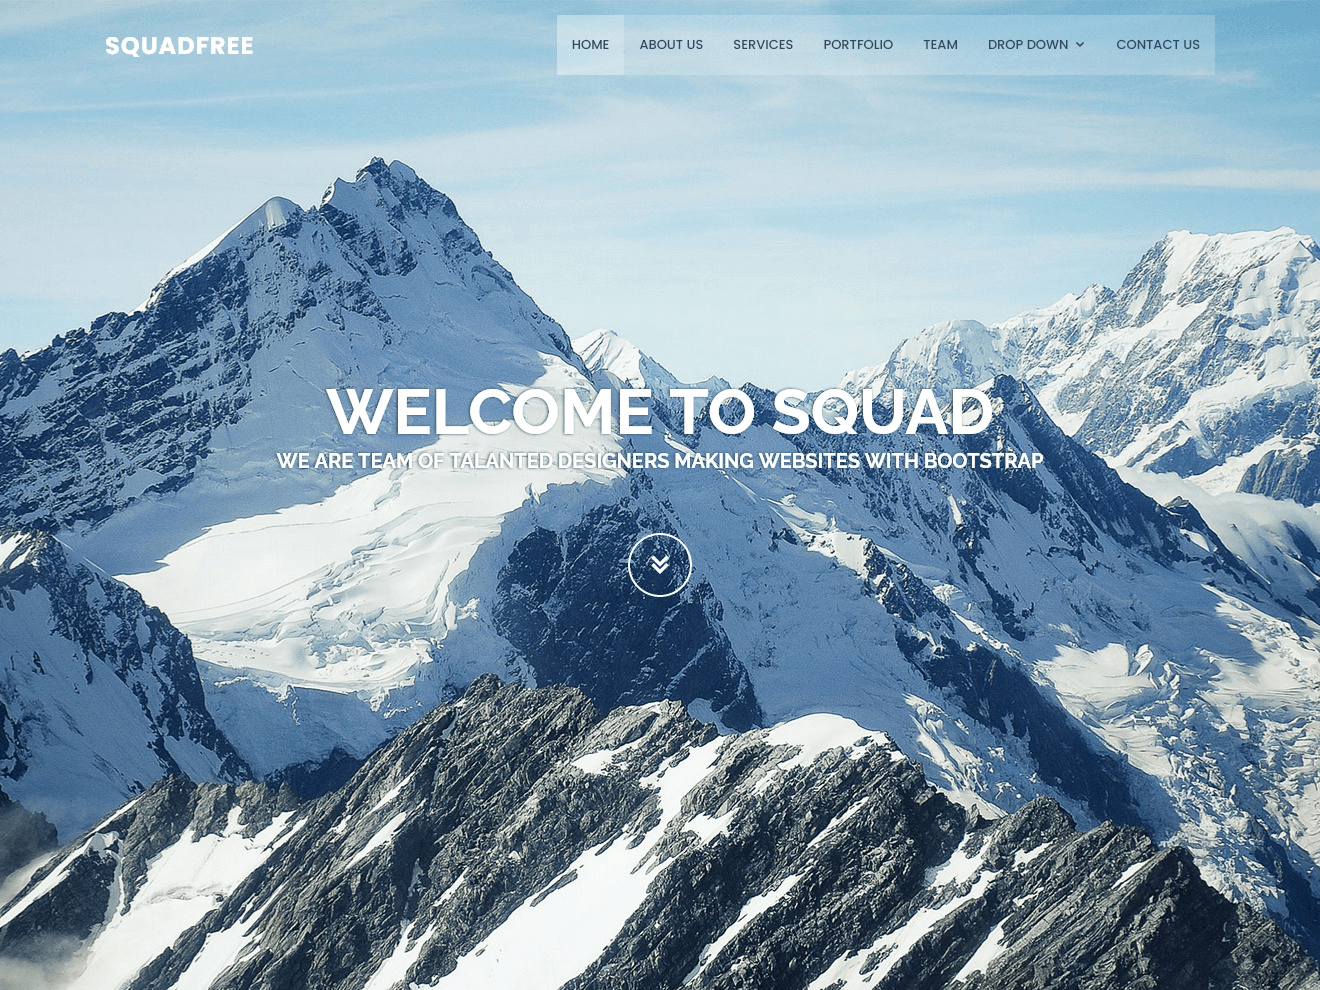 Squadfree - Free Bootstrap template for creative